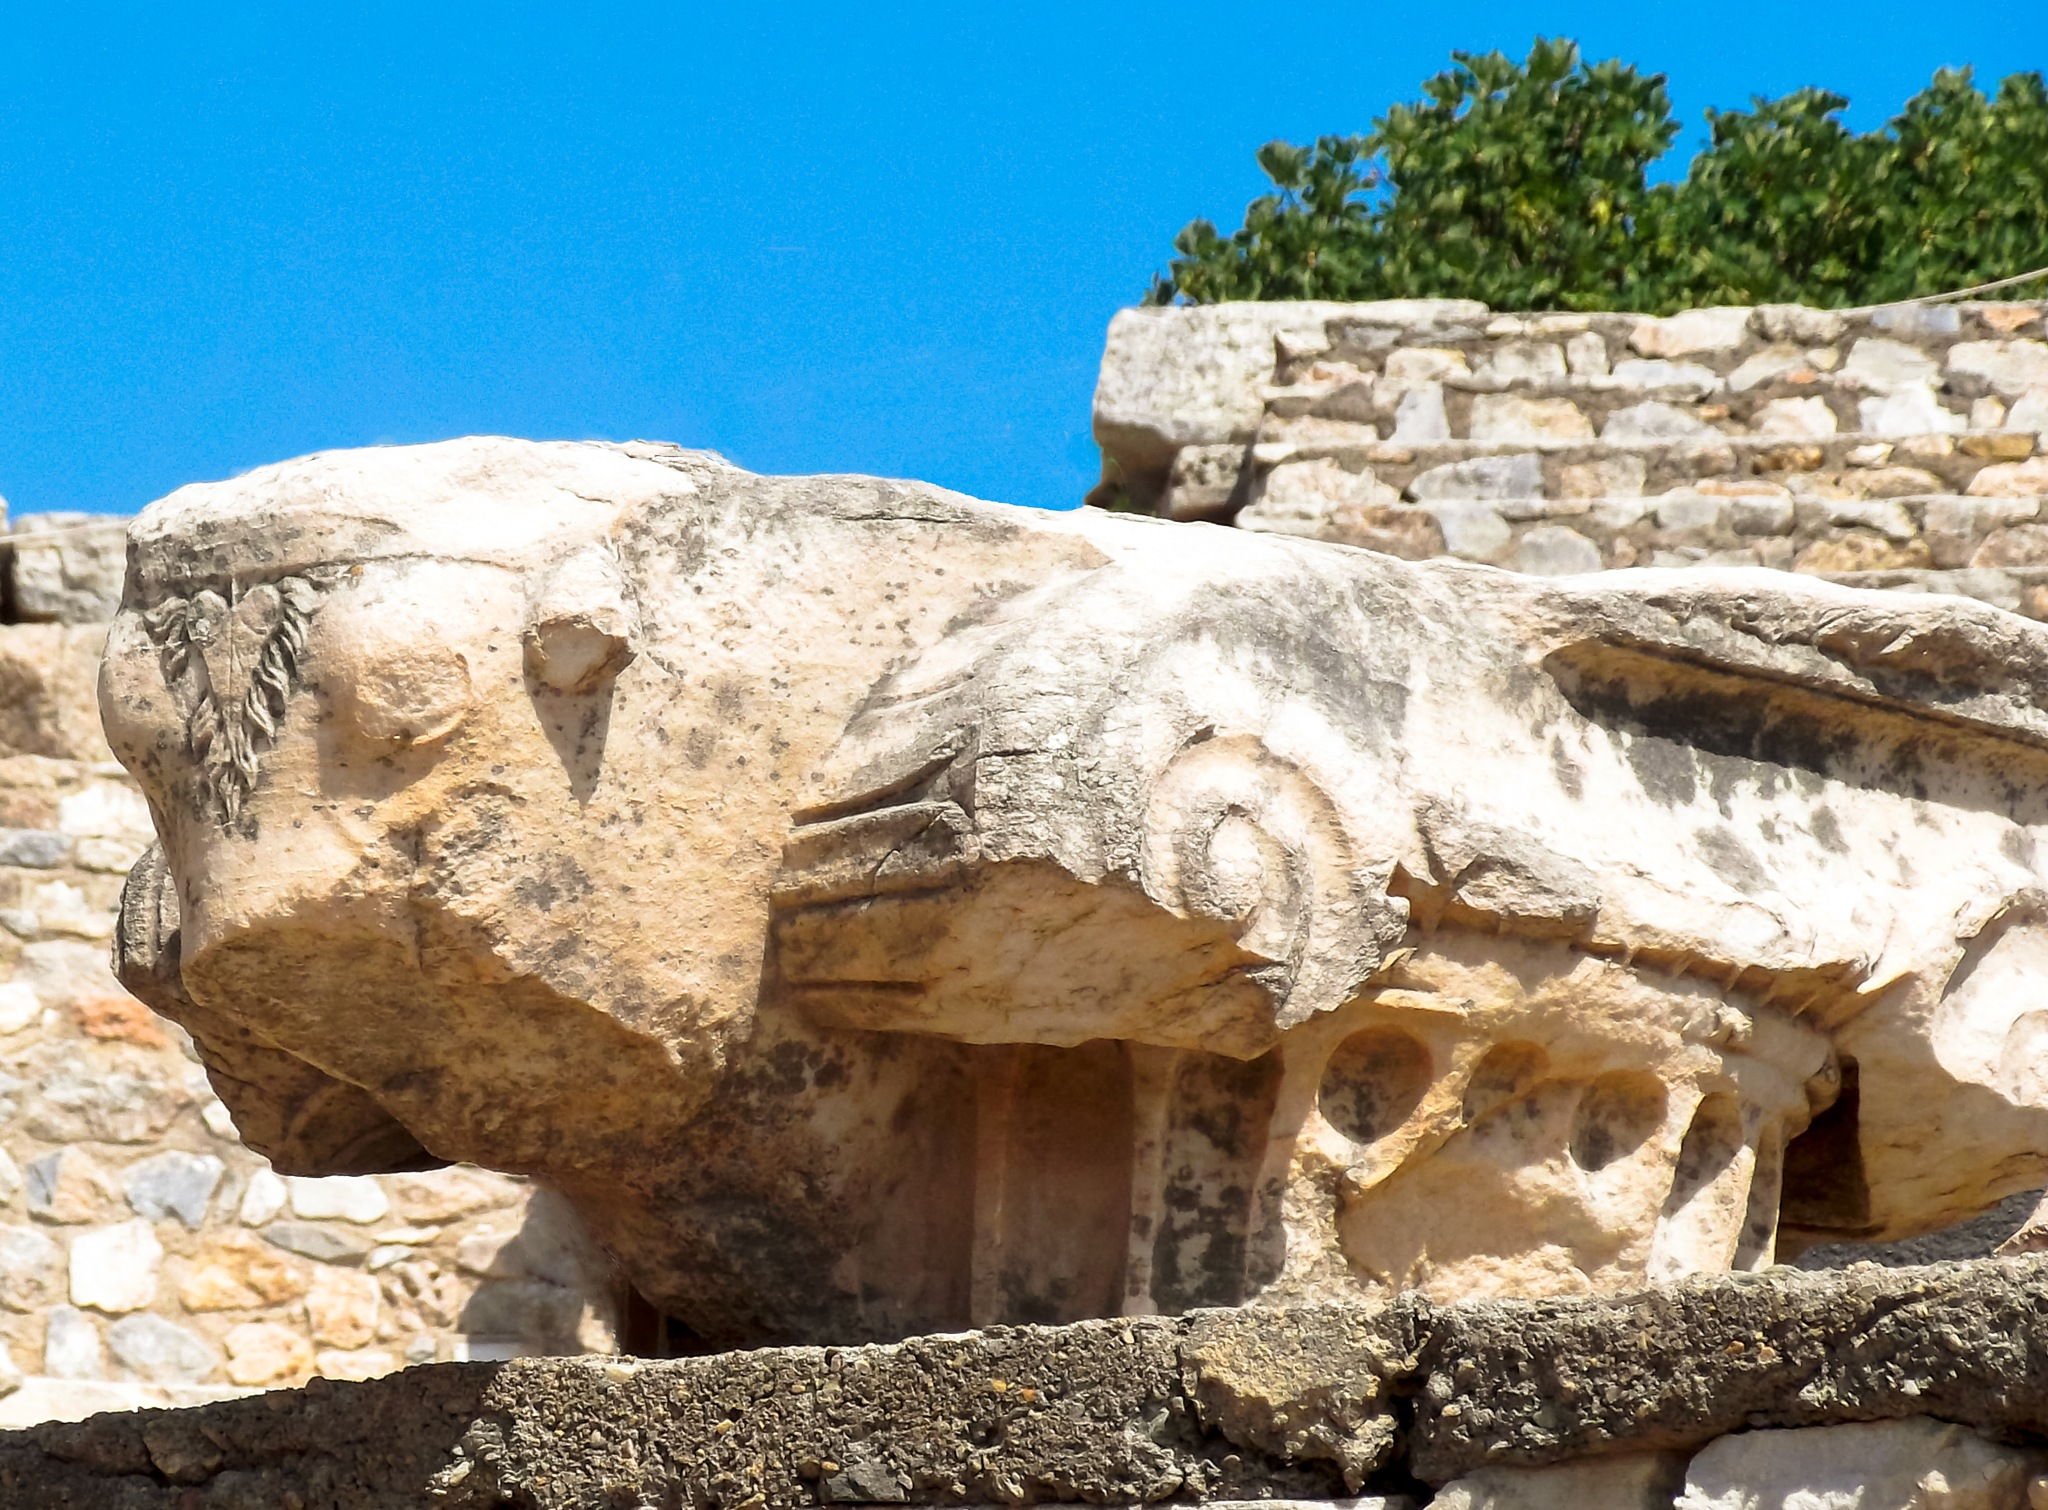 Carved Bull Ephesus - Turkey by Martin Roper